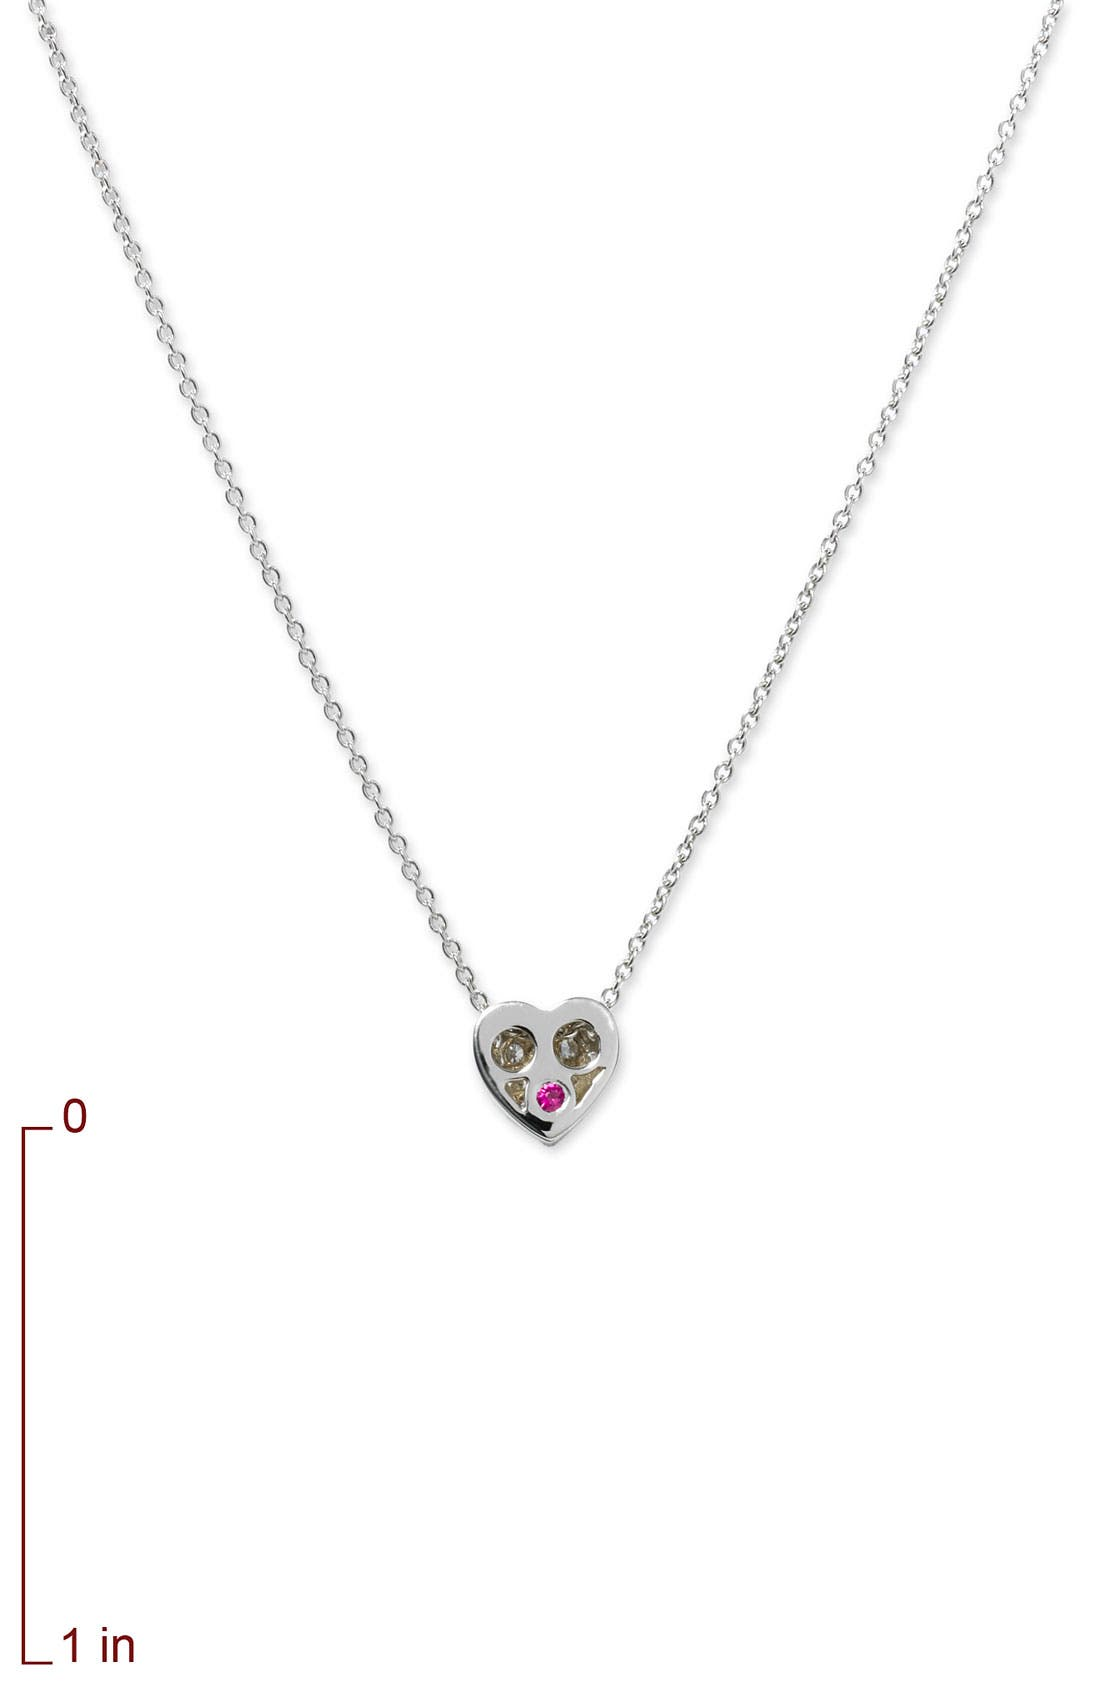 'Tiny Treasures' Diamond Puffed Heart Pendant Necklace,                             Alternate thumbnail 3, color,                             041